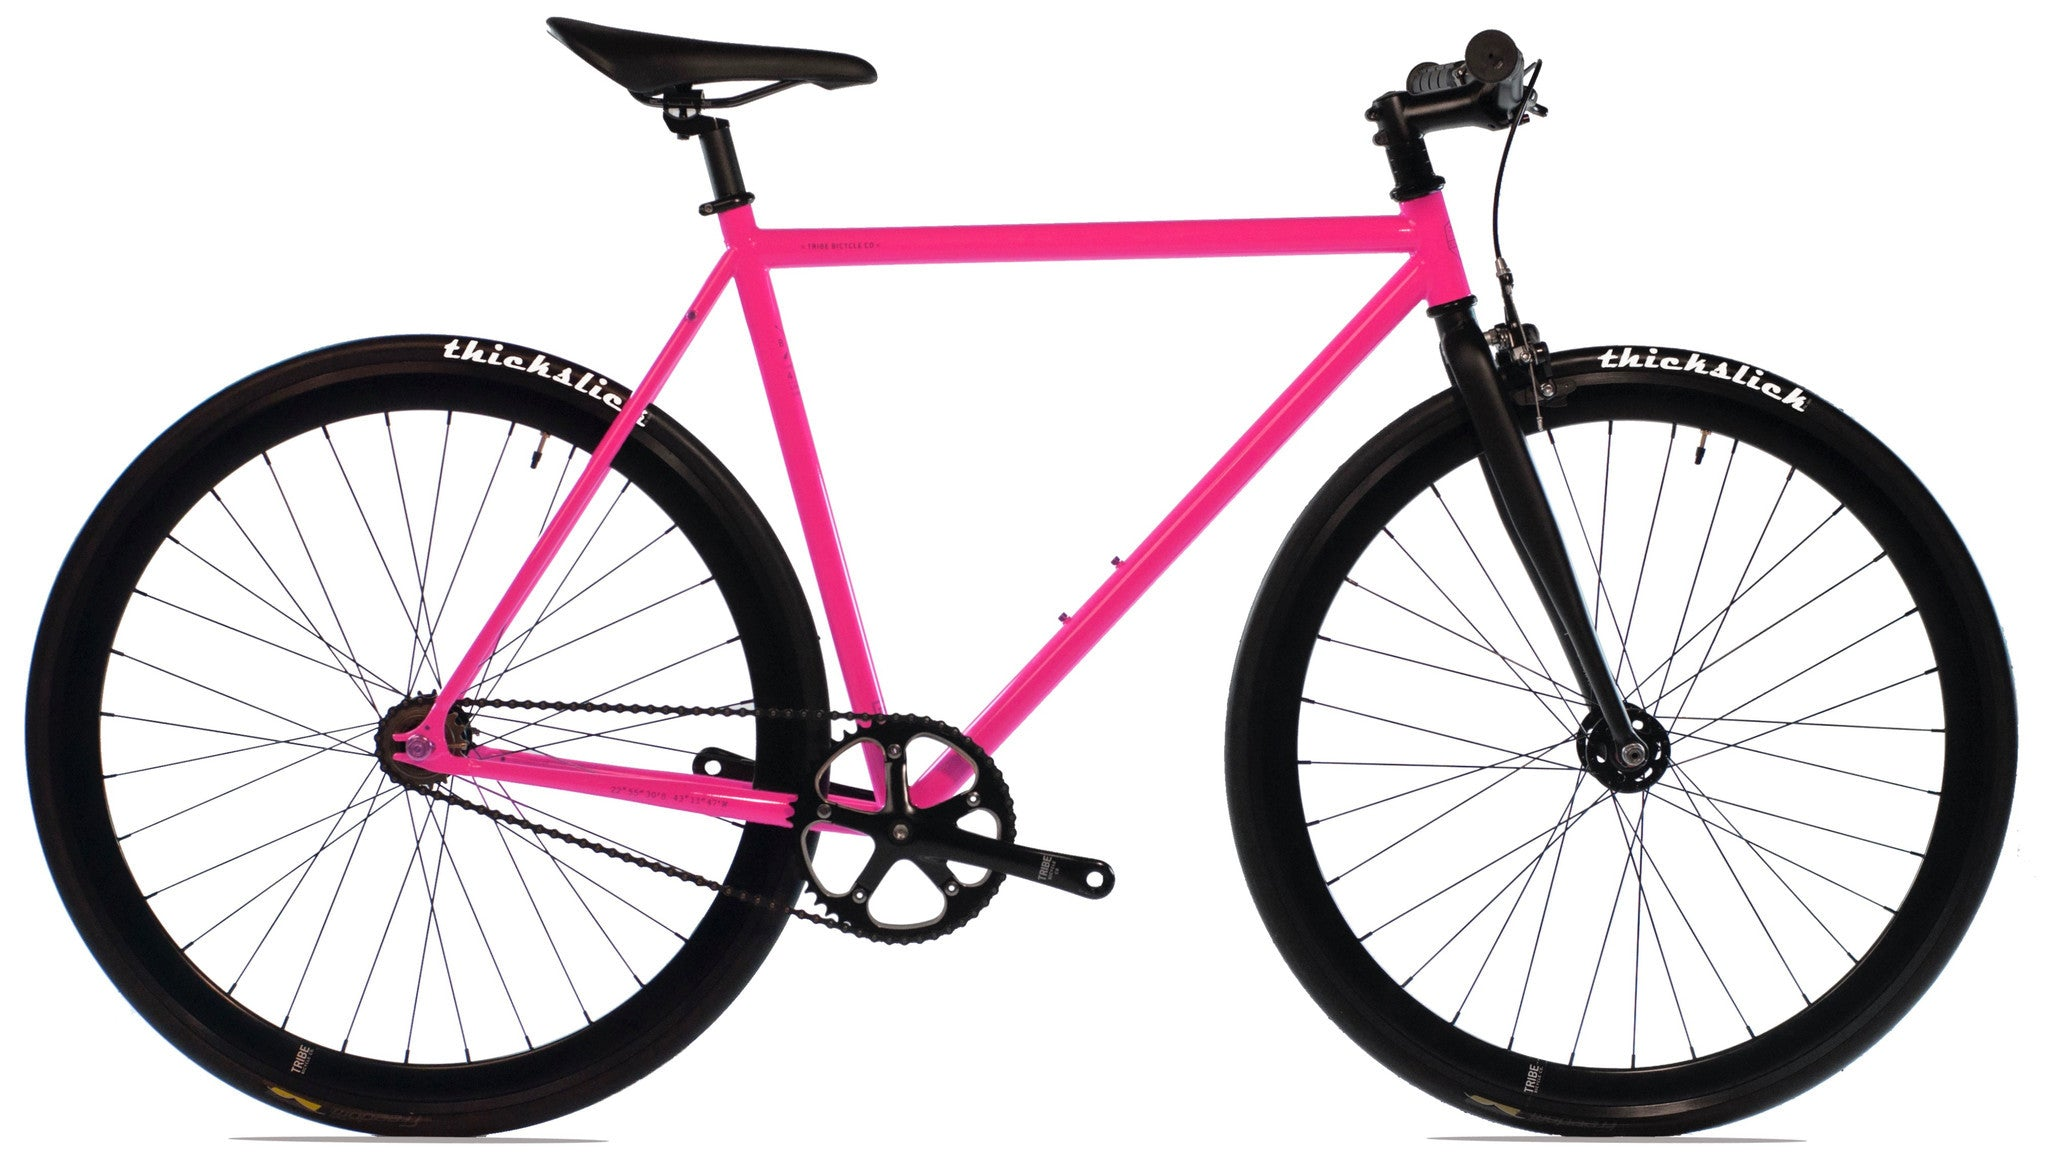 09afb5992 Tribe Bicycle Co. - CRMO Series - Rio - Tribe Bicycle Co. ®